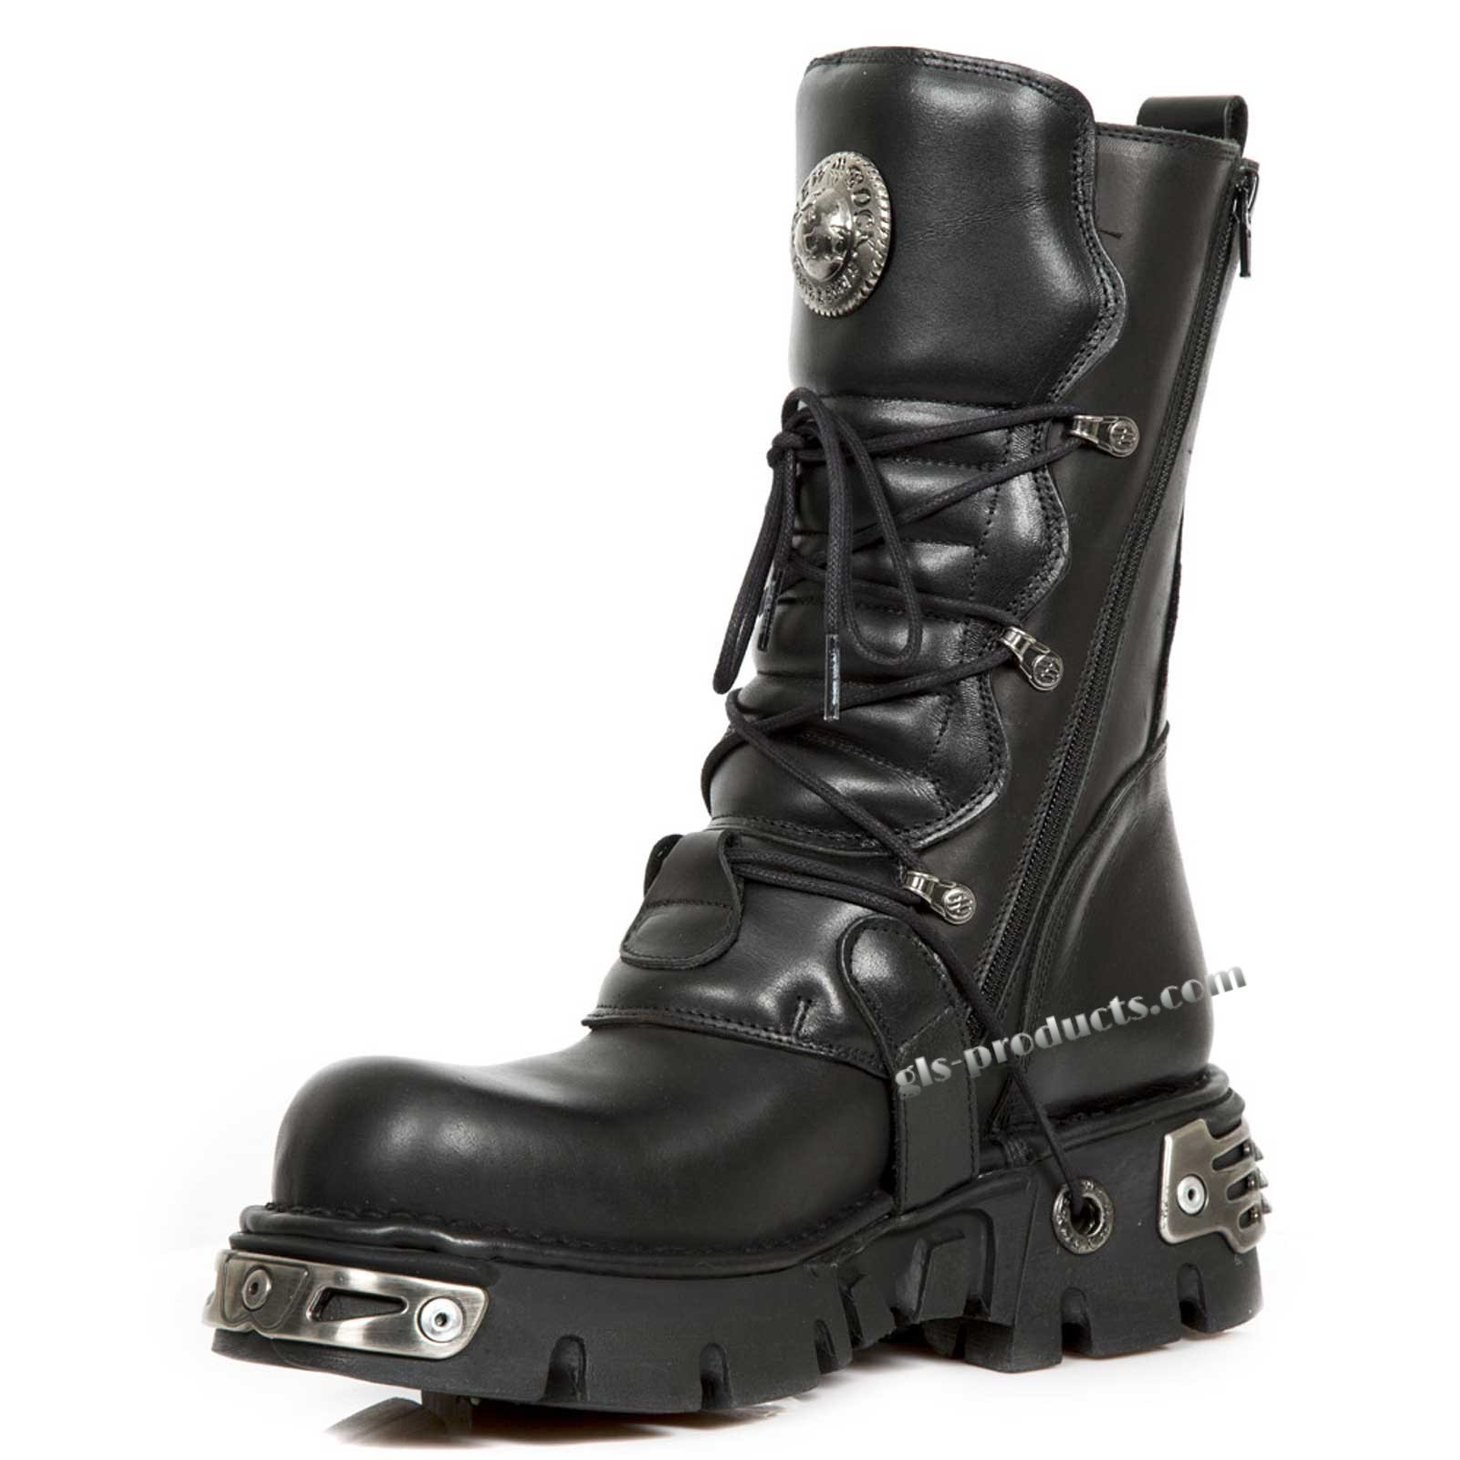 New Rock Boots 391, Skulls – Picture 6